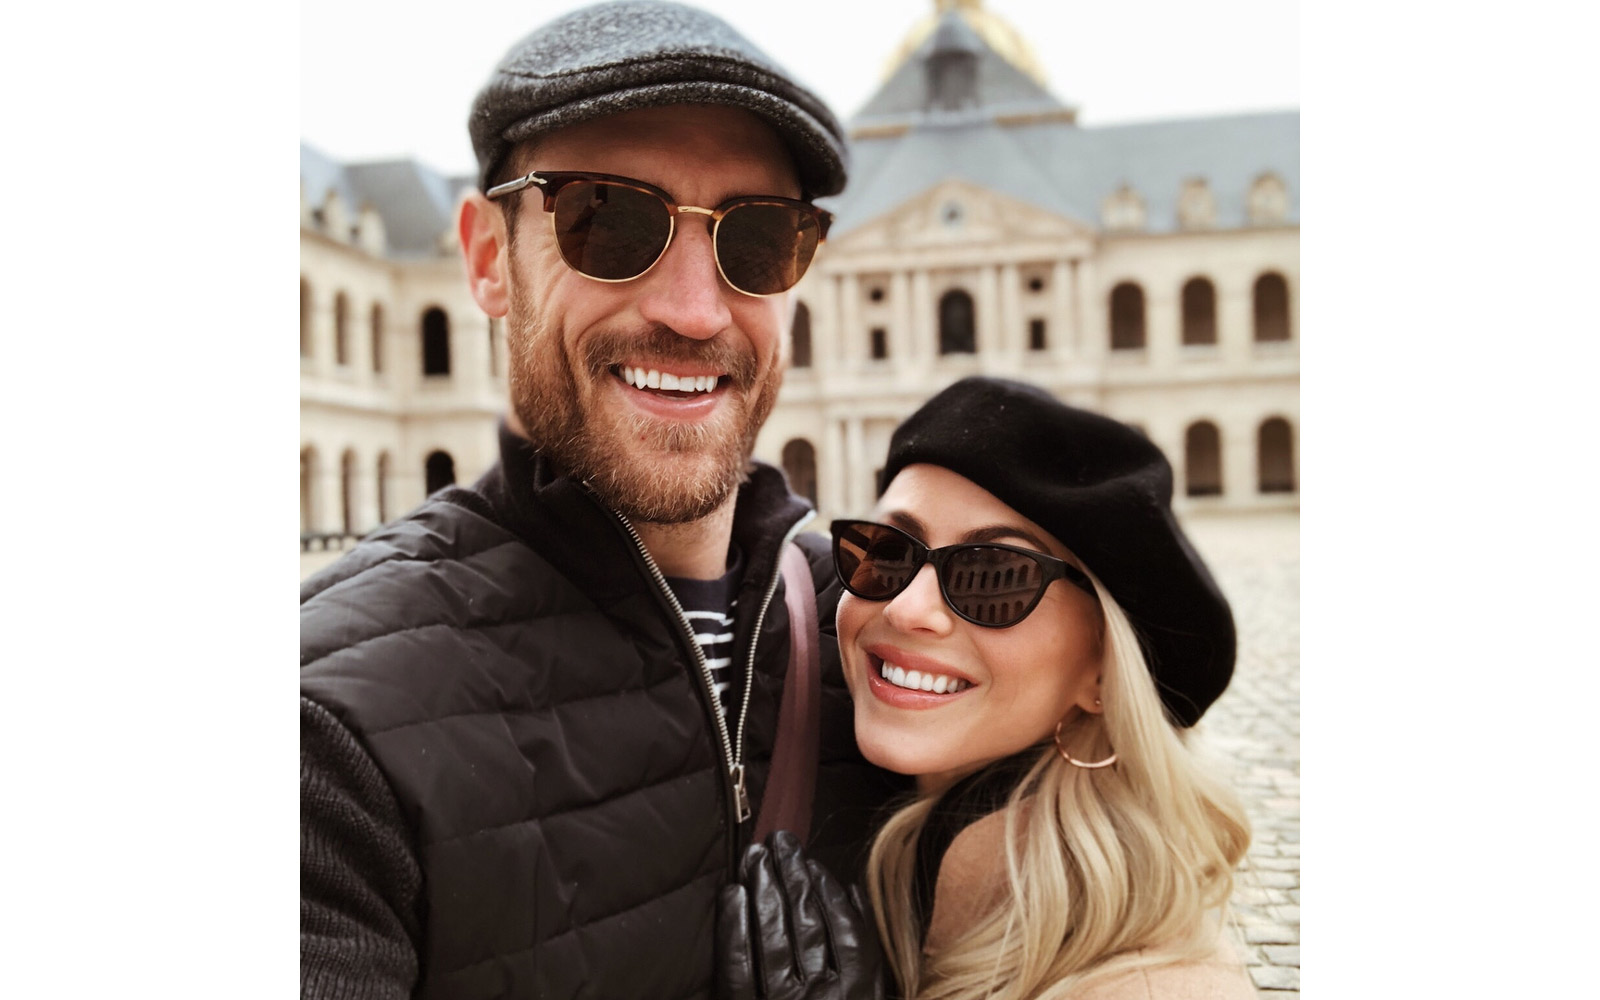 Julianne Hough and Brooks Laich taking a selfie on the streets of Paris